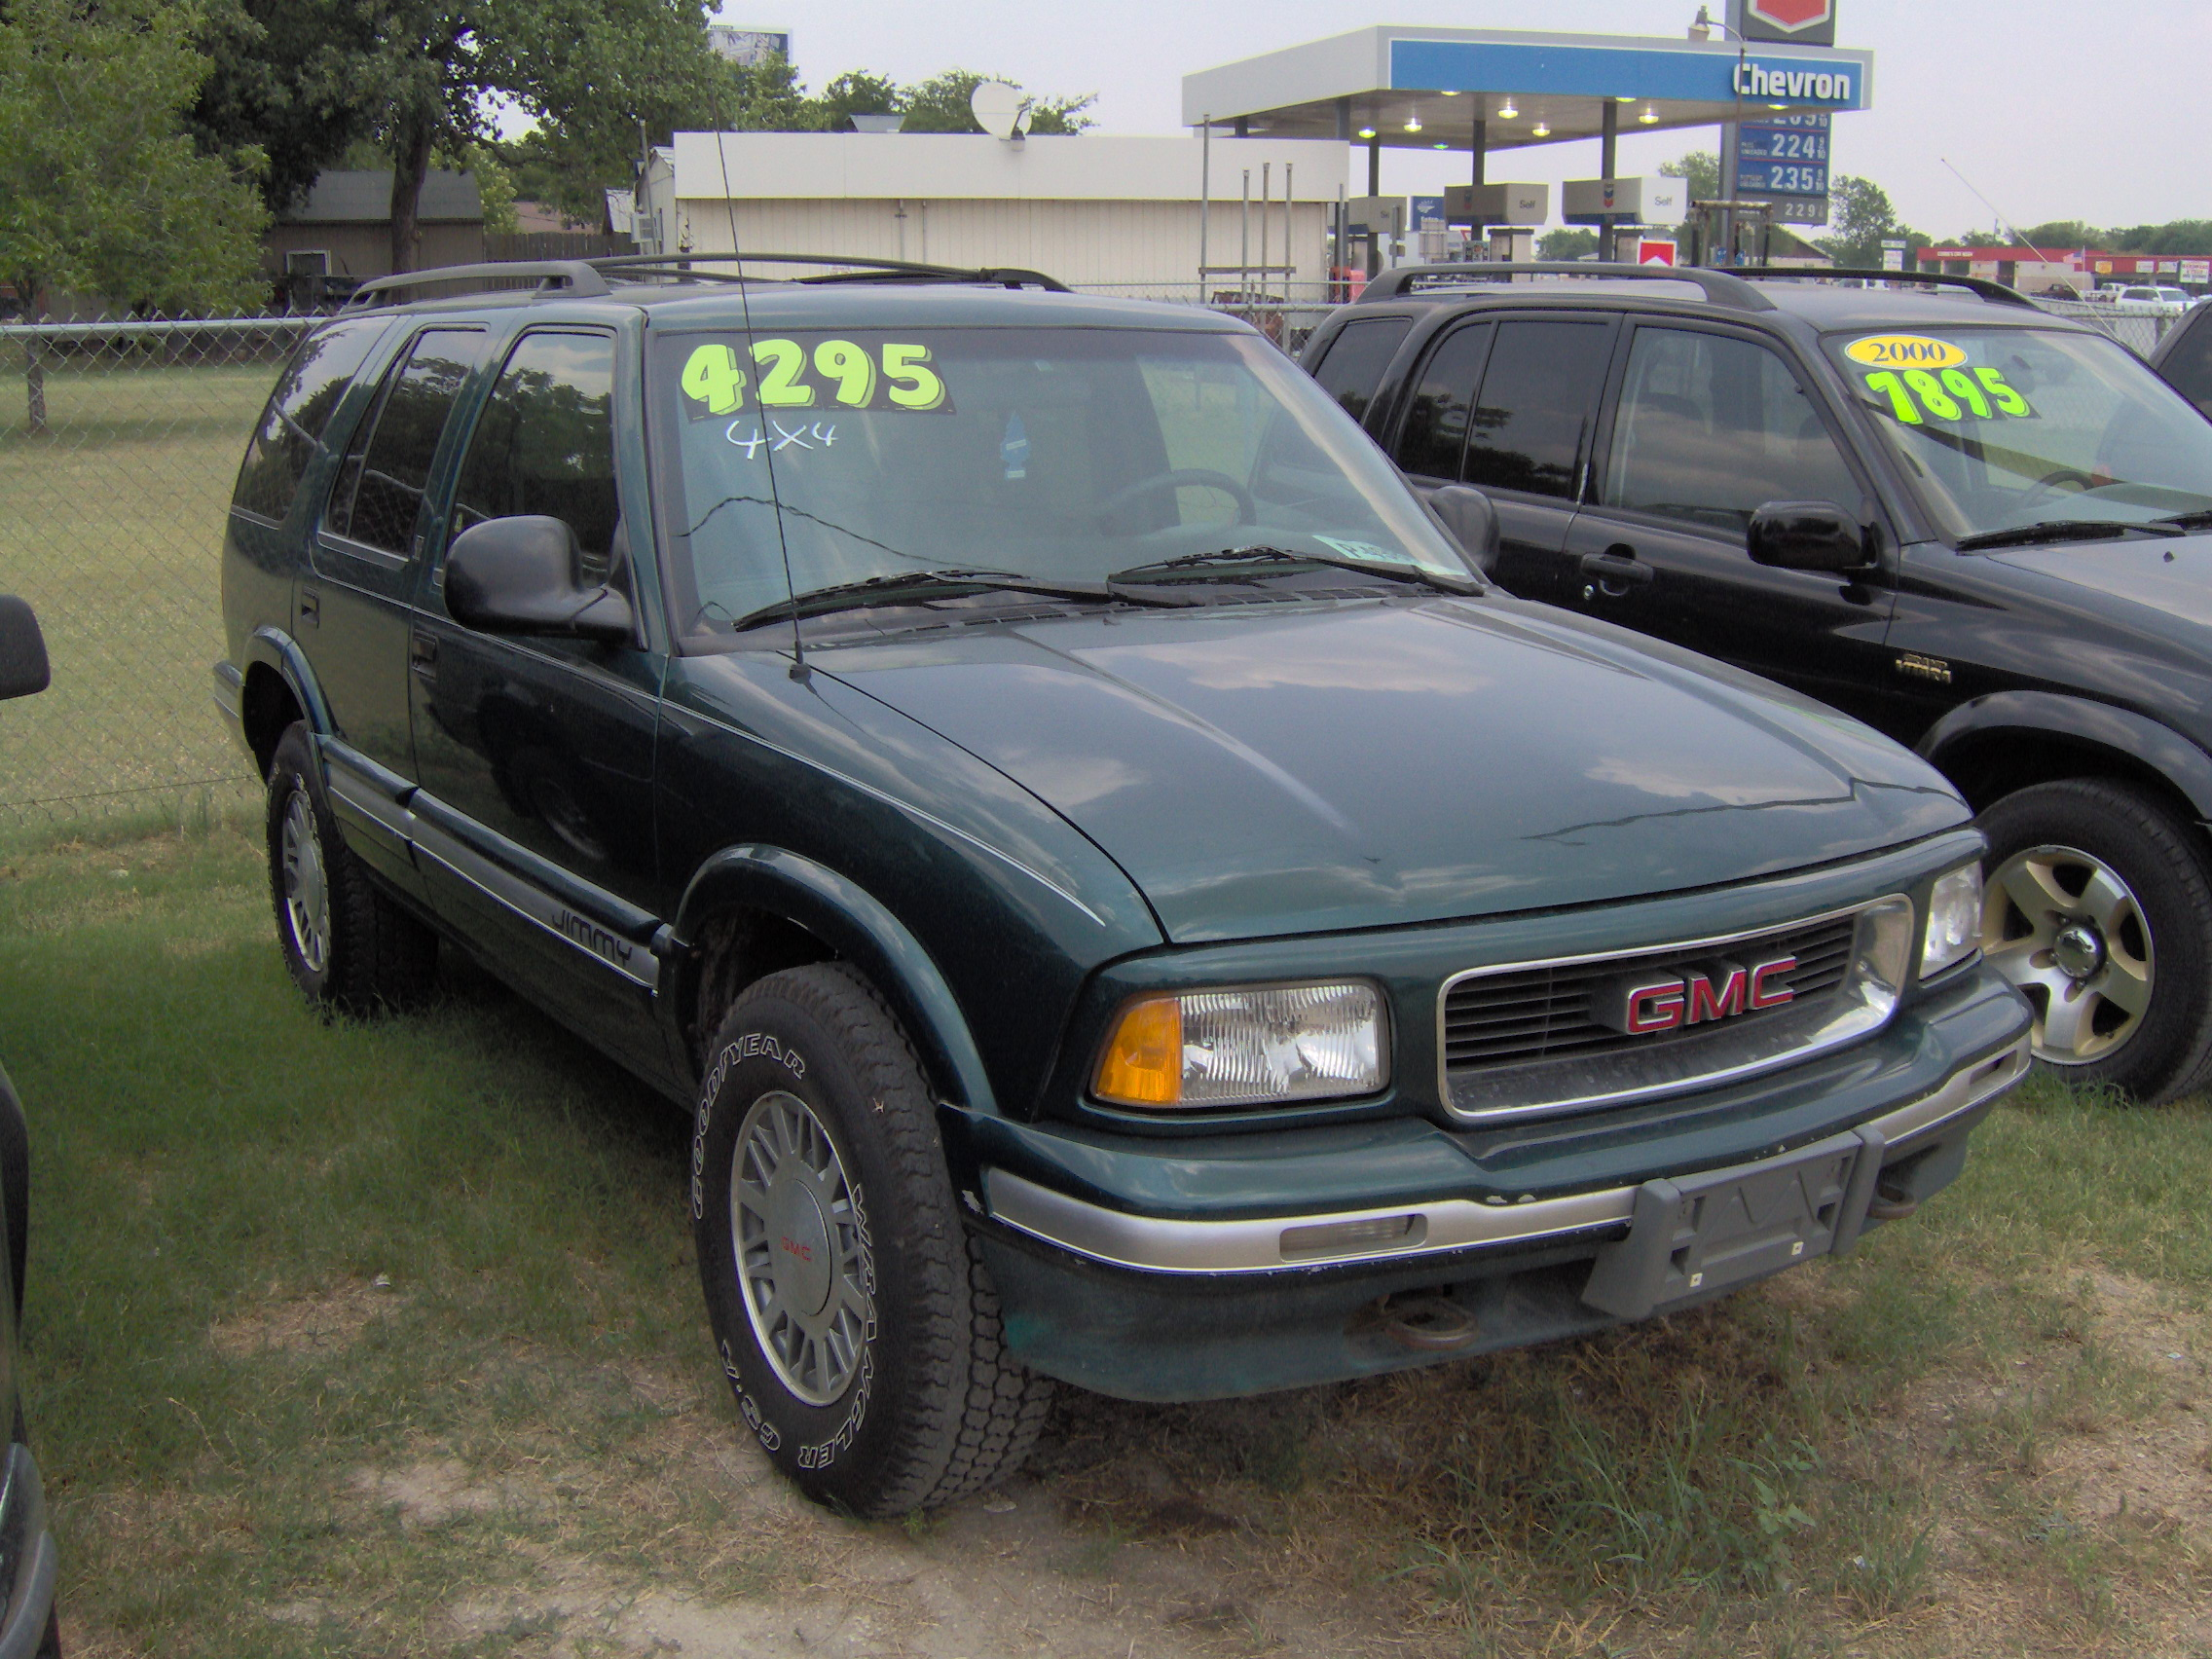 1997 GMC Jimmy #5 GMC Jimmy #5